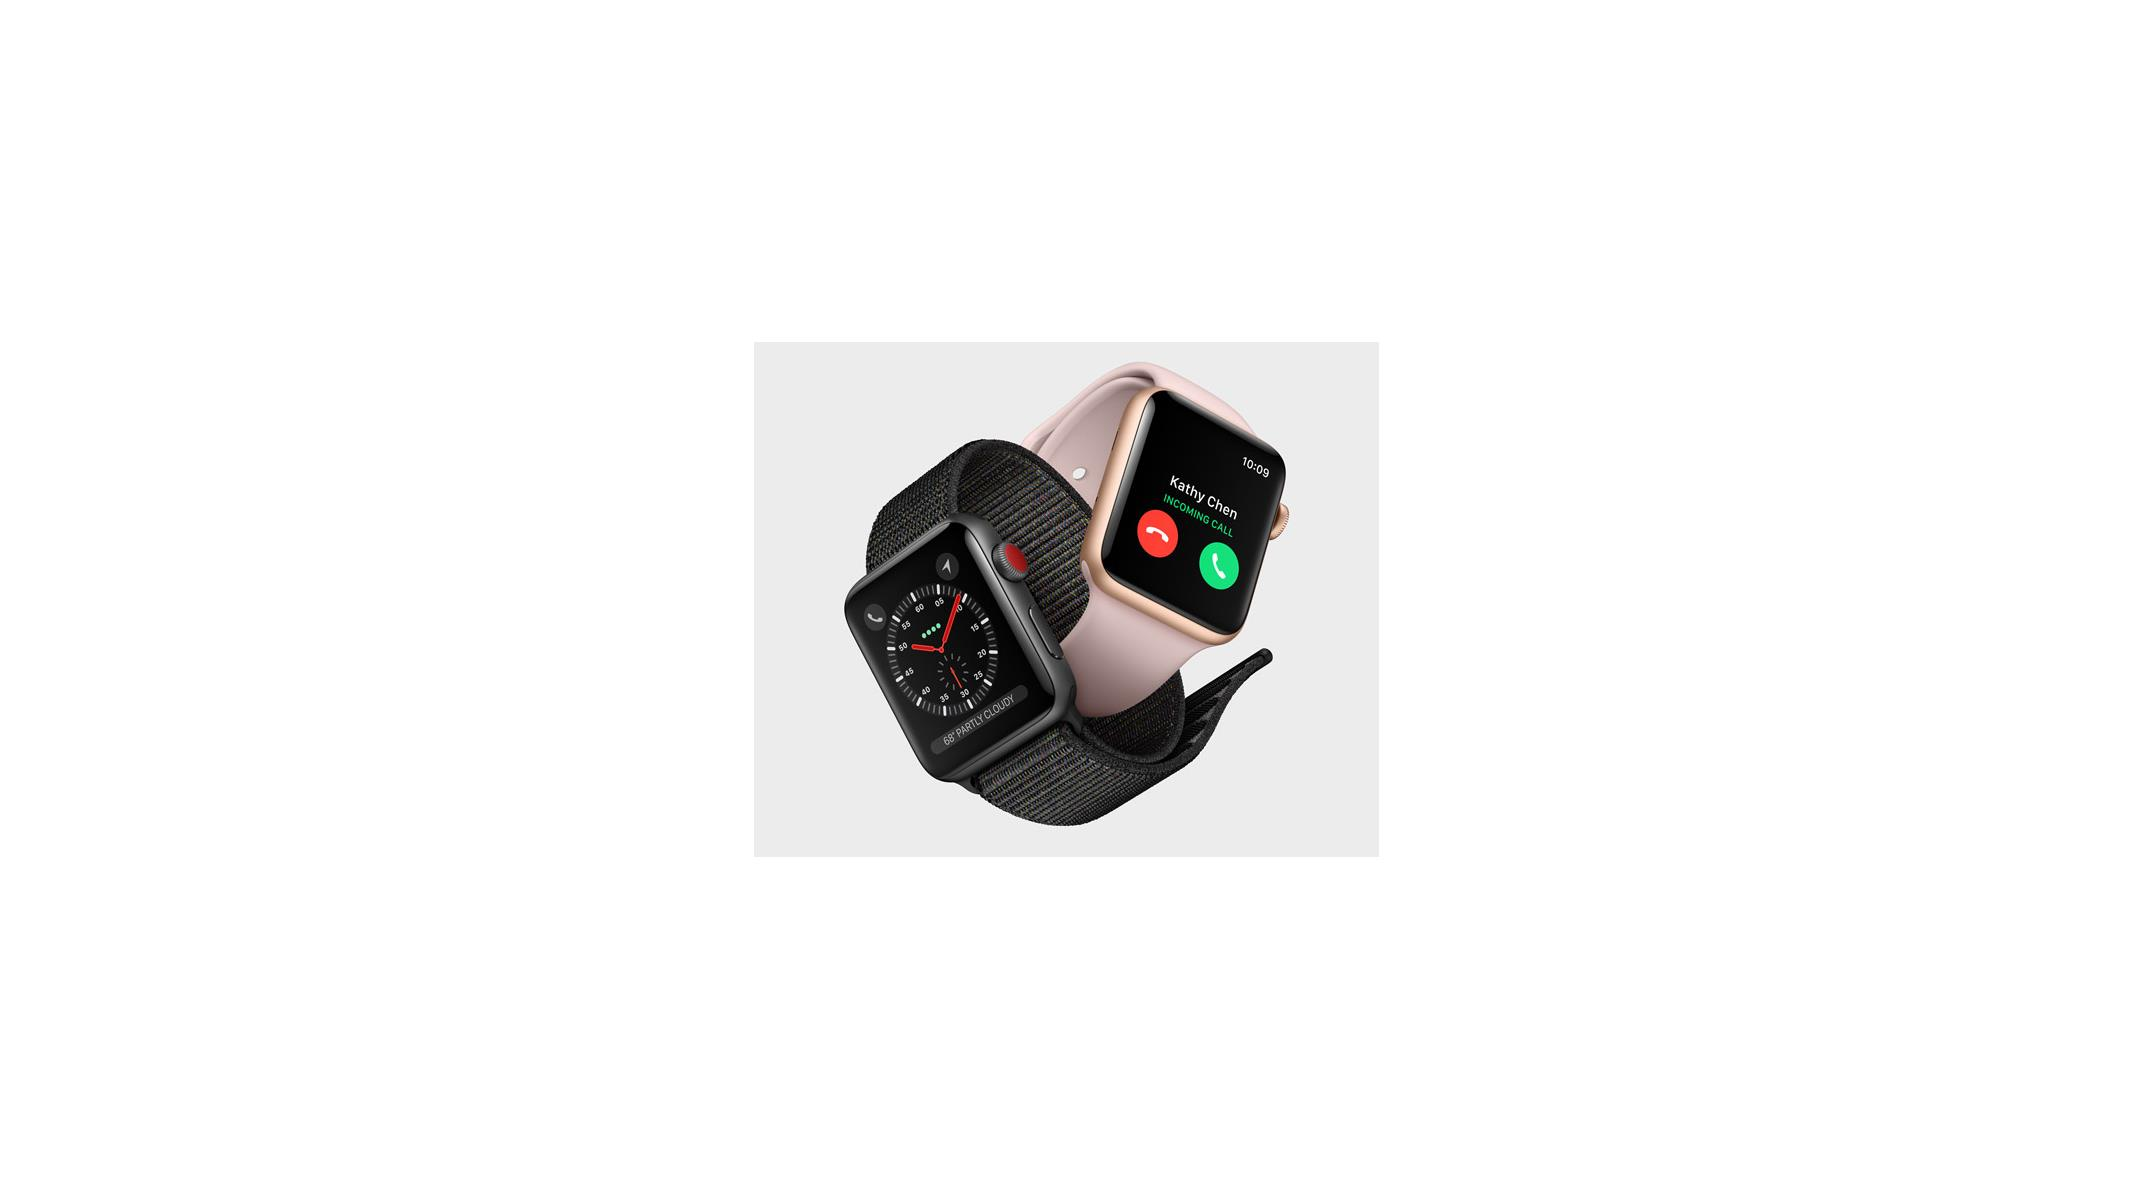 Buzzkill T-Mobile Will Choke Apple Watch Series 3 To 3G